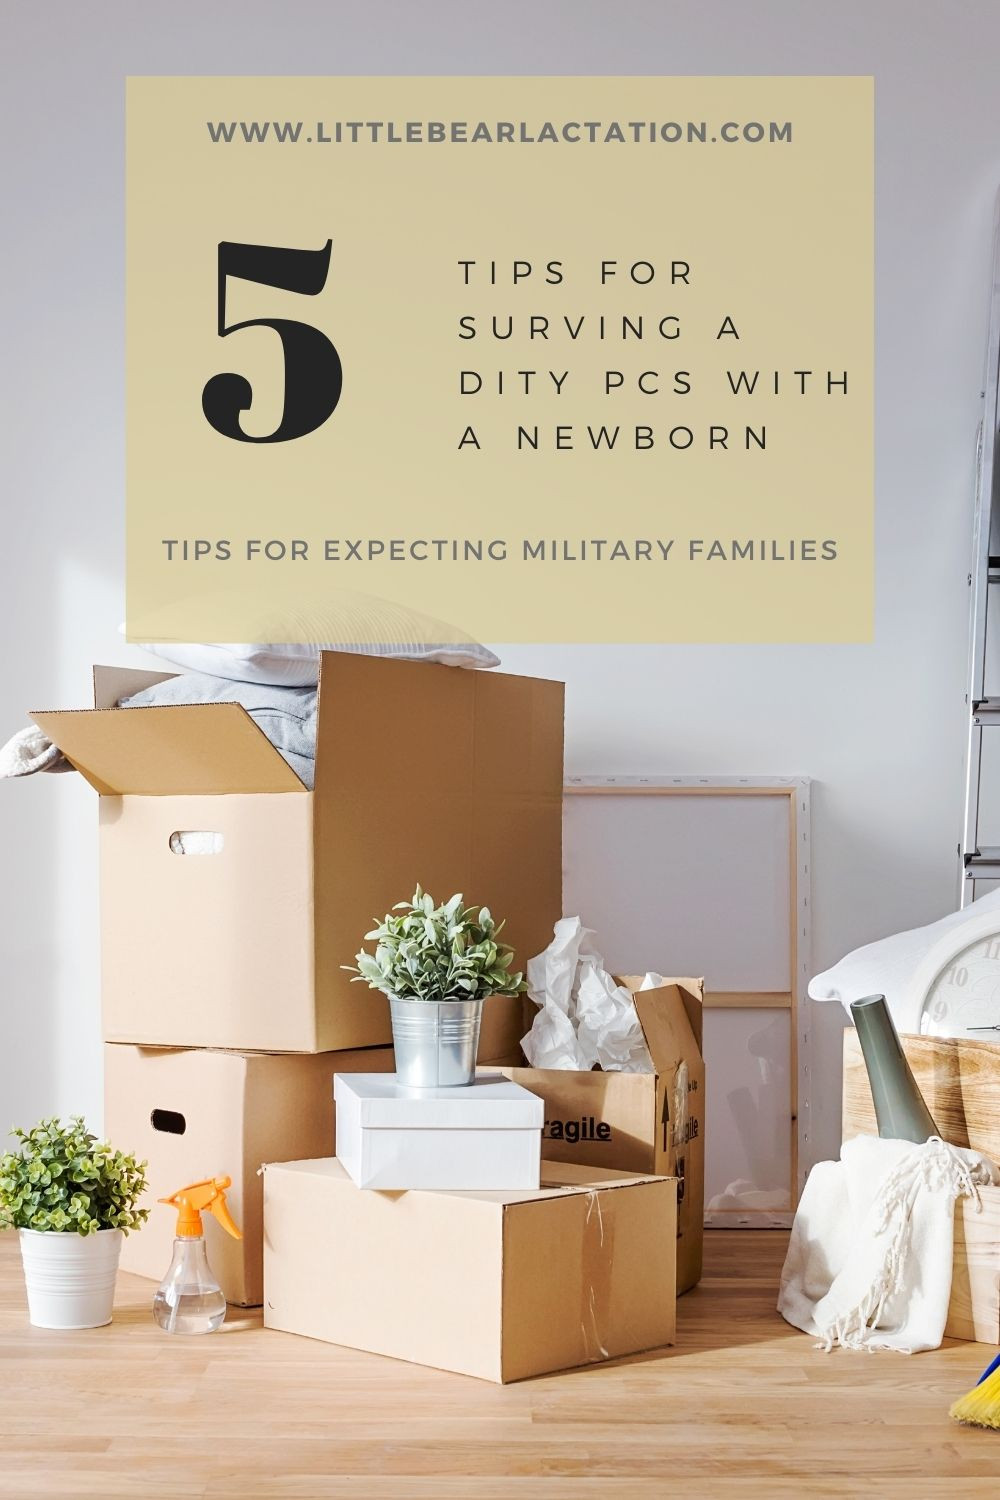 Image of moving boxes stacked on top of each other says 5 tips for surviving a DITY PCS with a newborn tips for breastfed newborns tips for military families